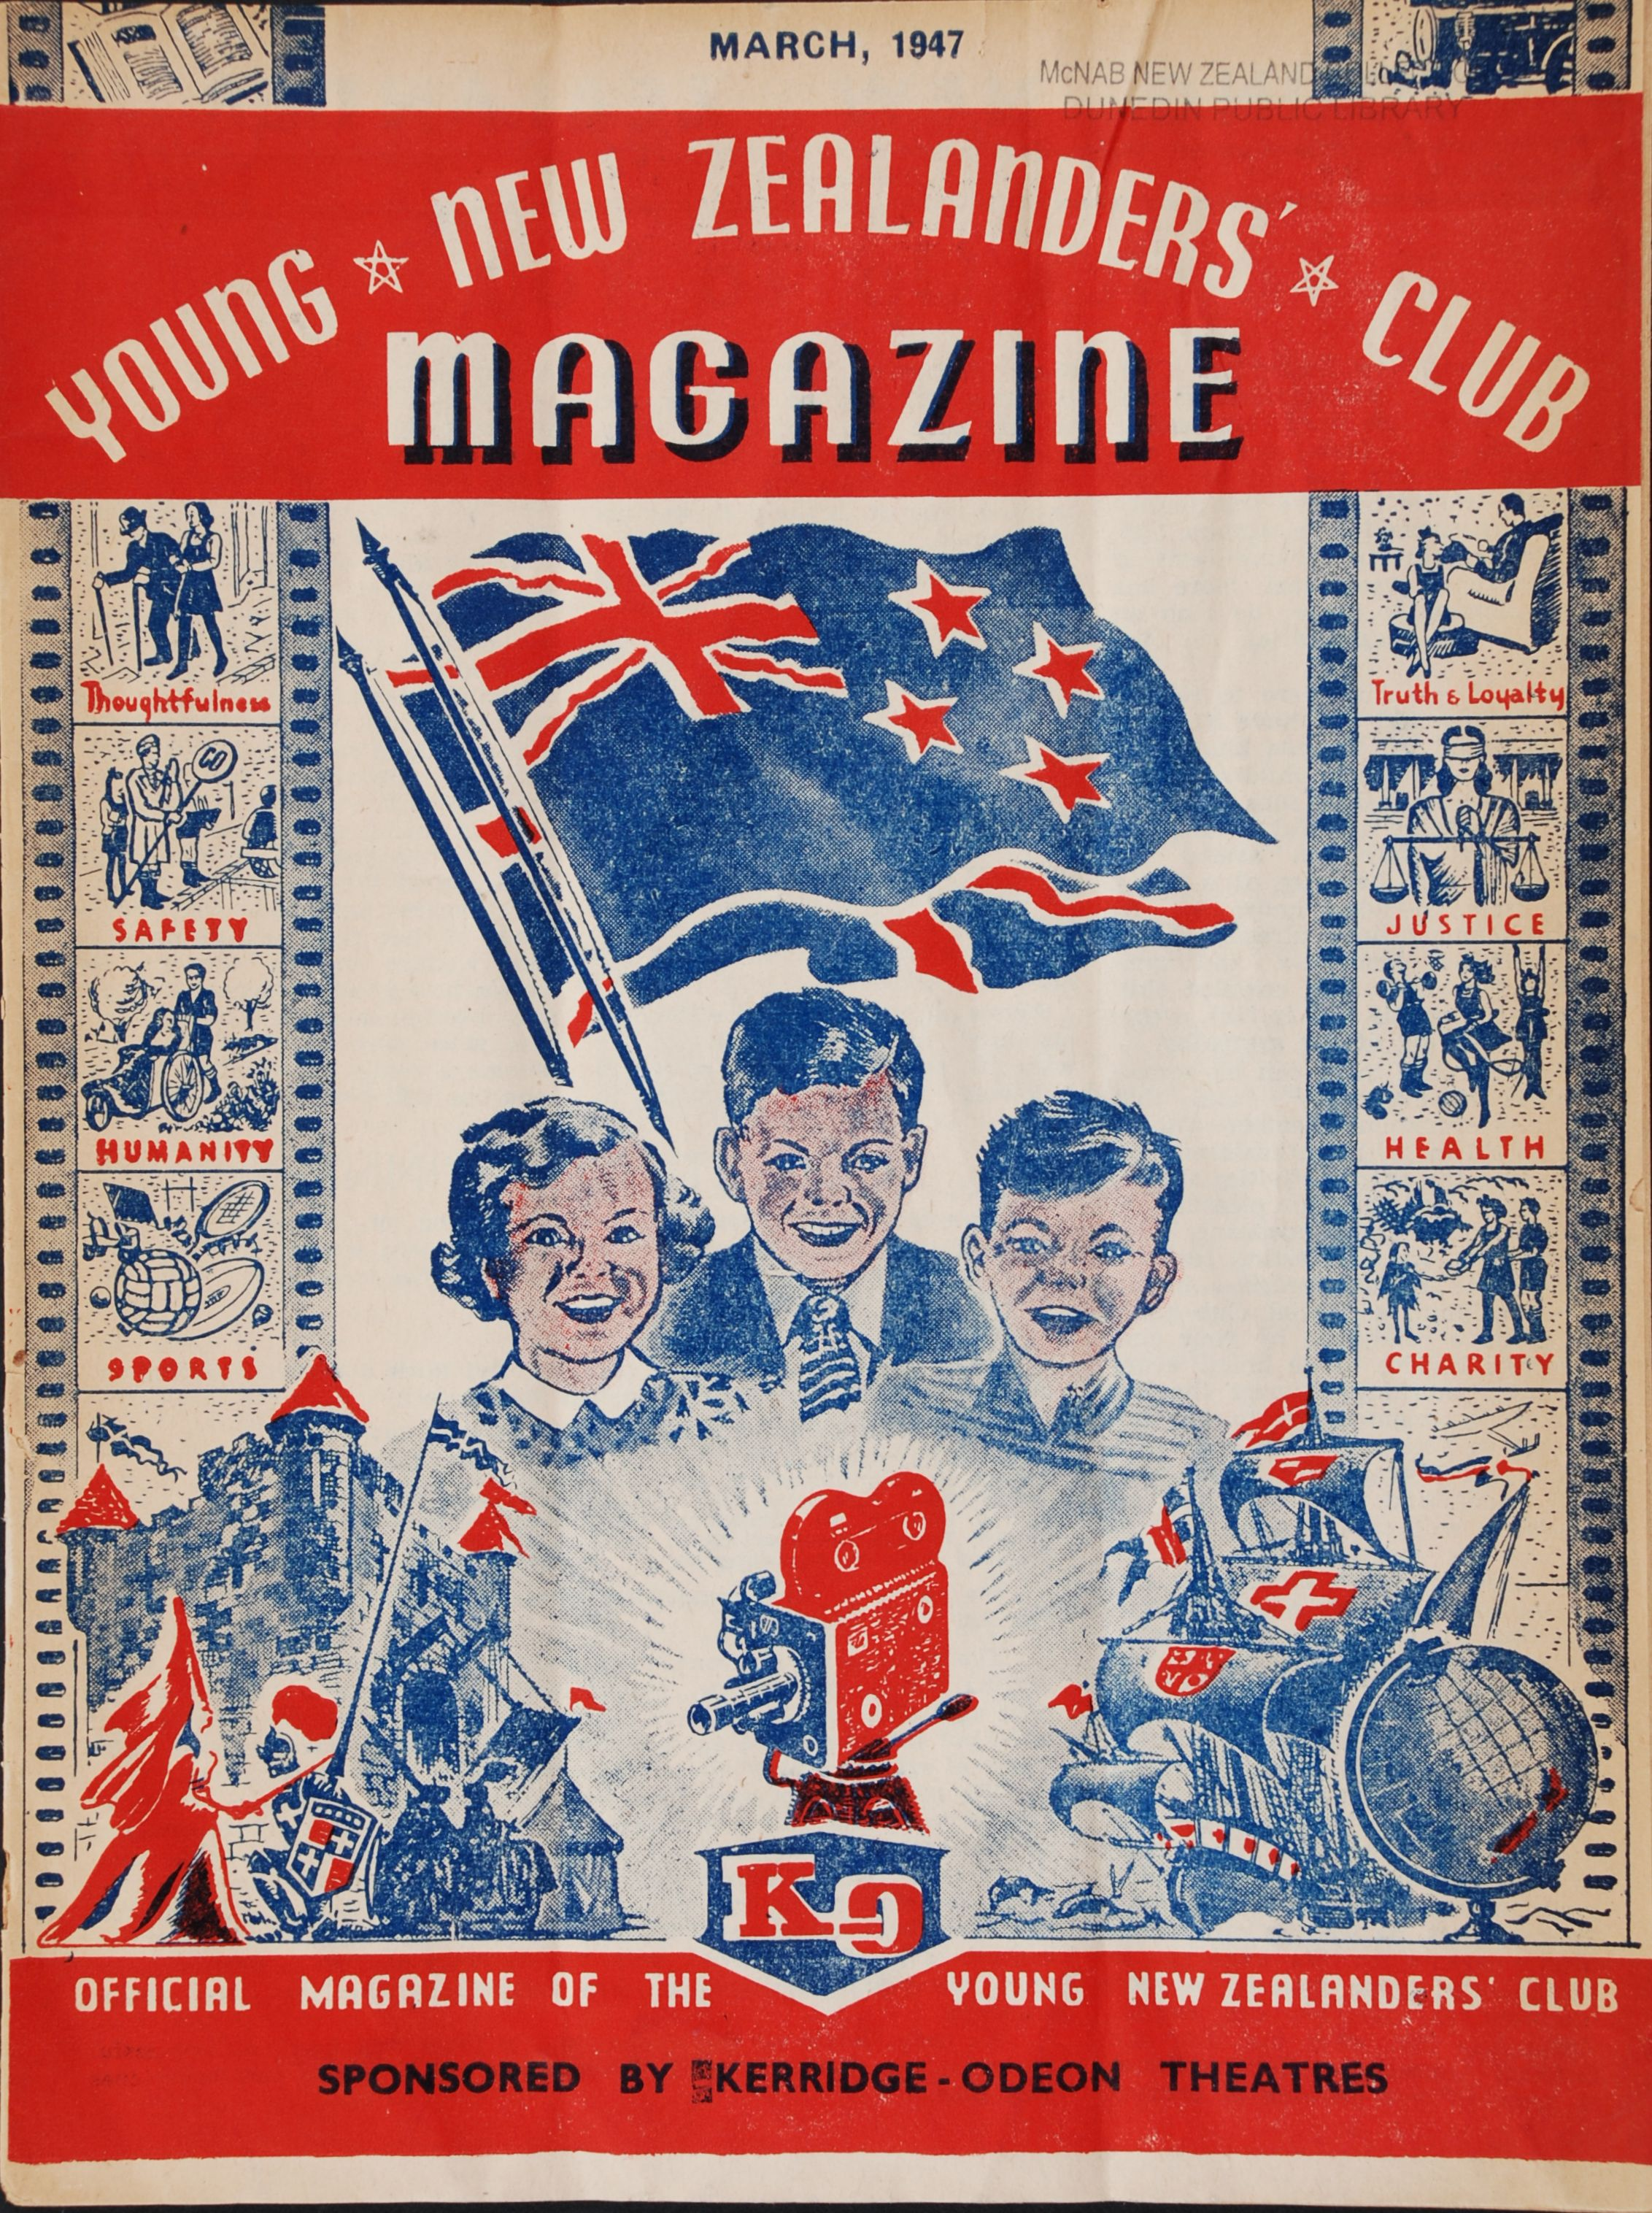 Young New Zealander: Young New Zealanders' Club Magazine. Auckland [N.Z.]: Kerridge Odeon Theatres. Volume 1 no. 2, January 1947.